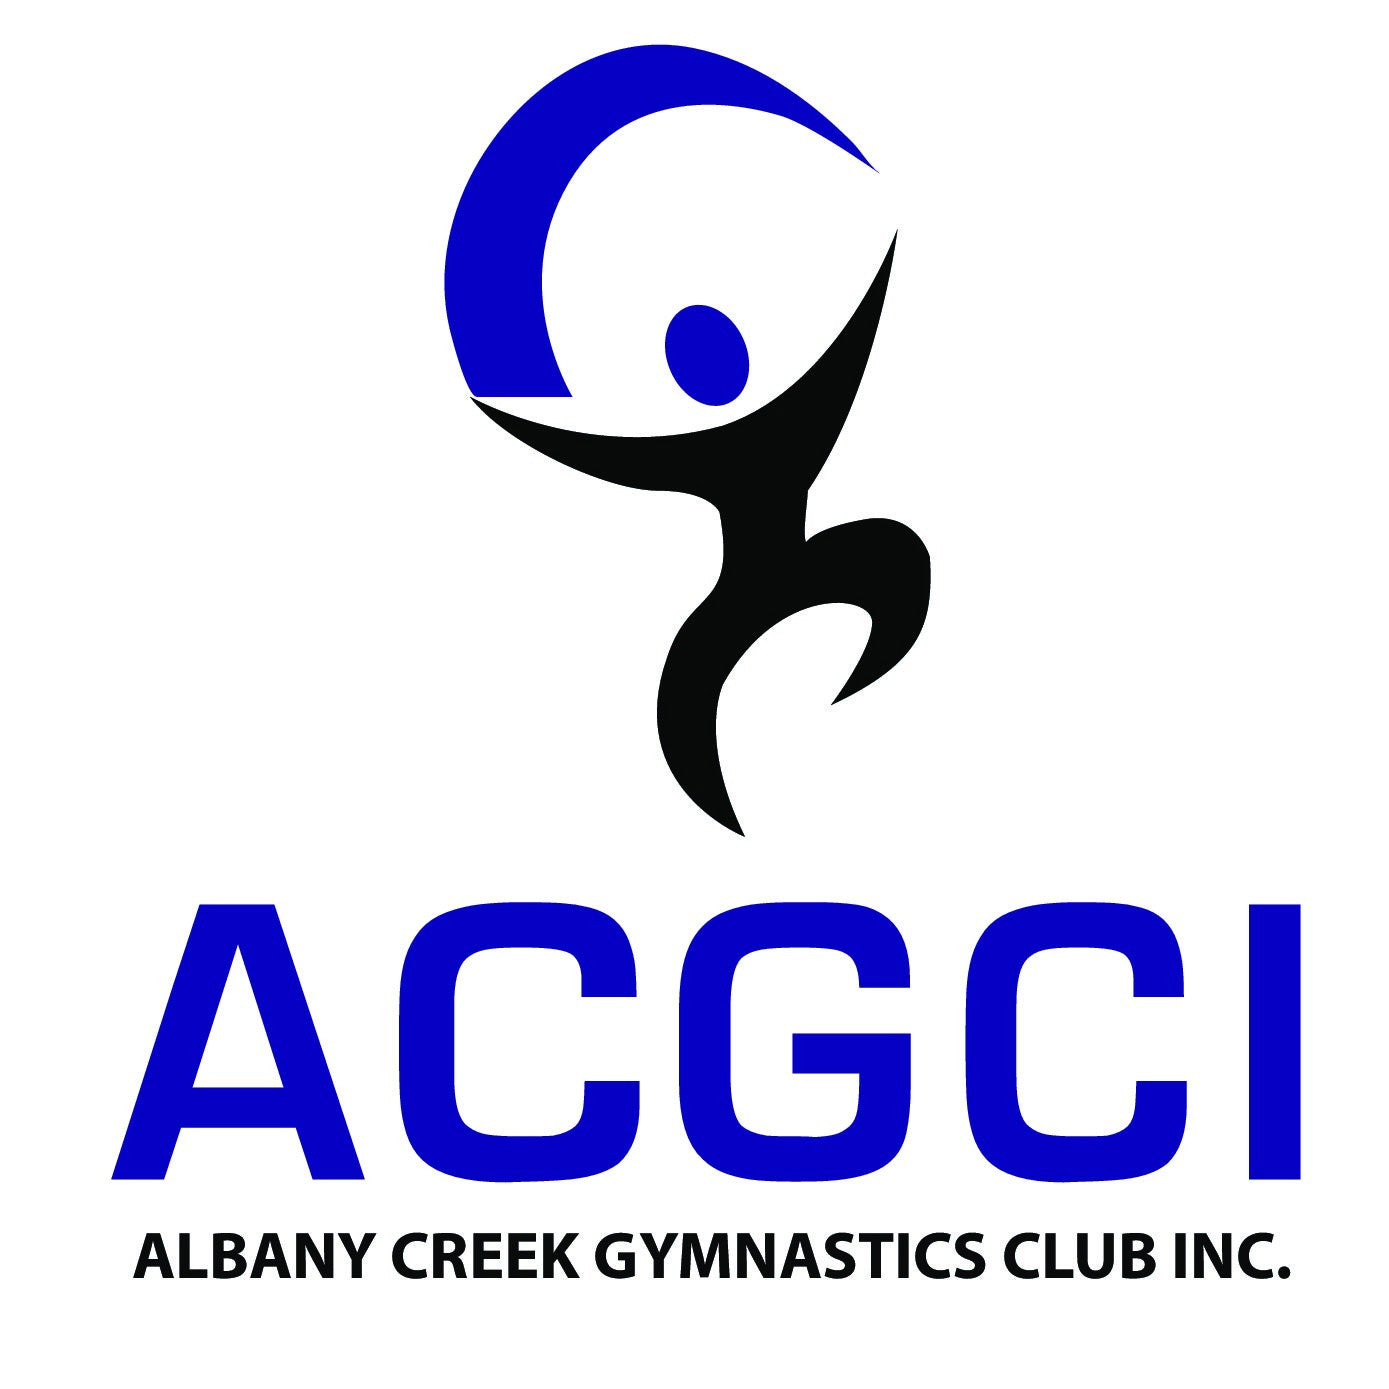 Albany Creek Gymnastics